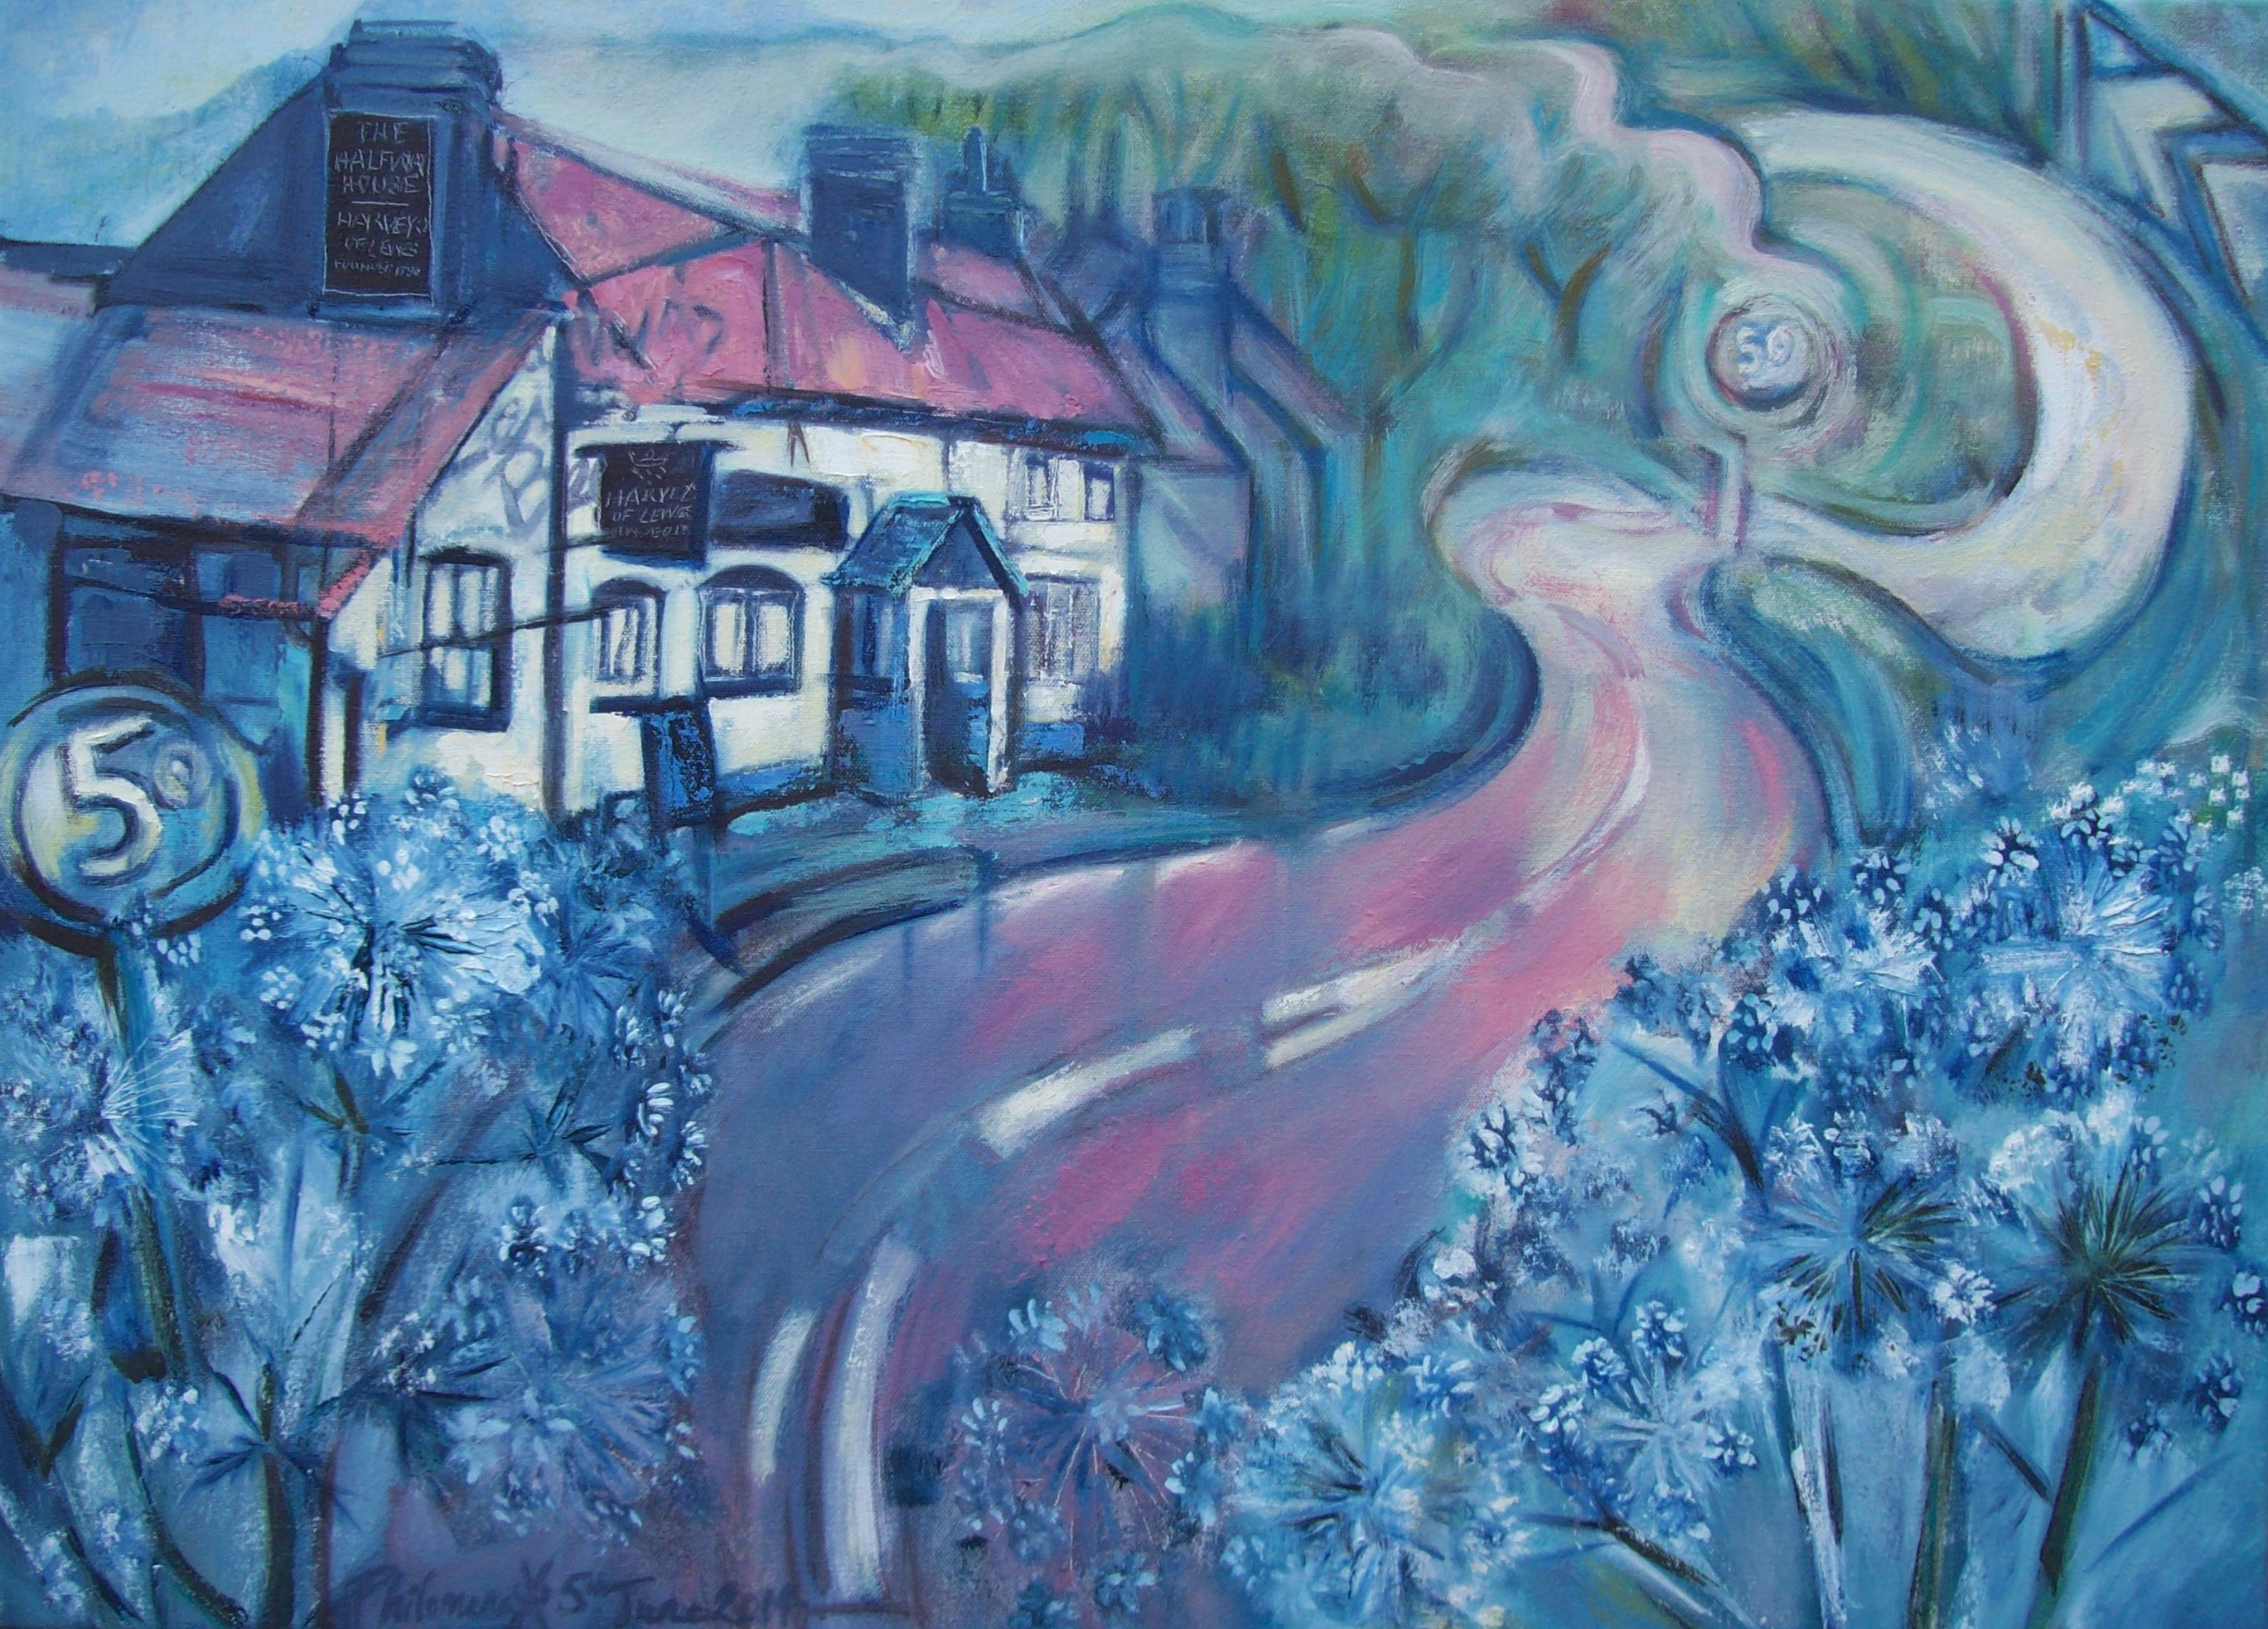 Half-Way House, Lewes to Uckfield (Fine Art Prints)